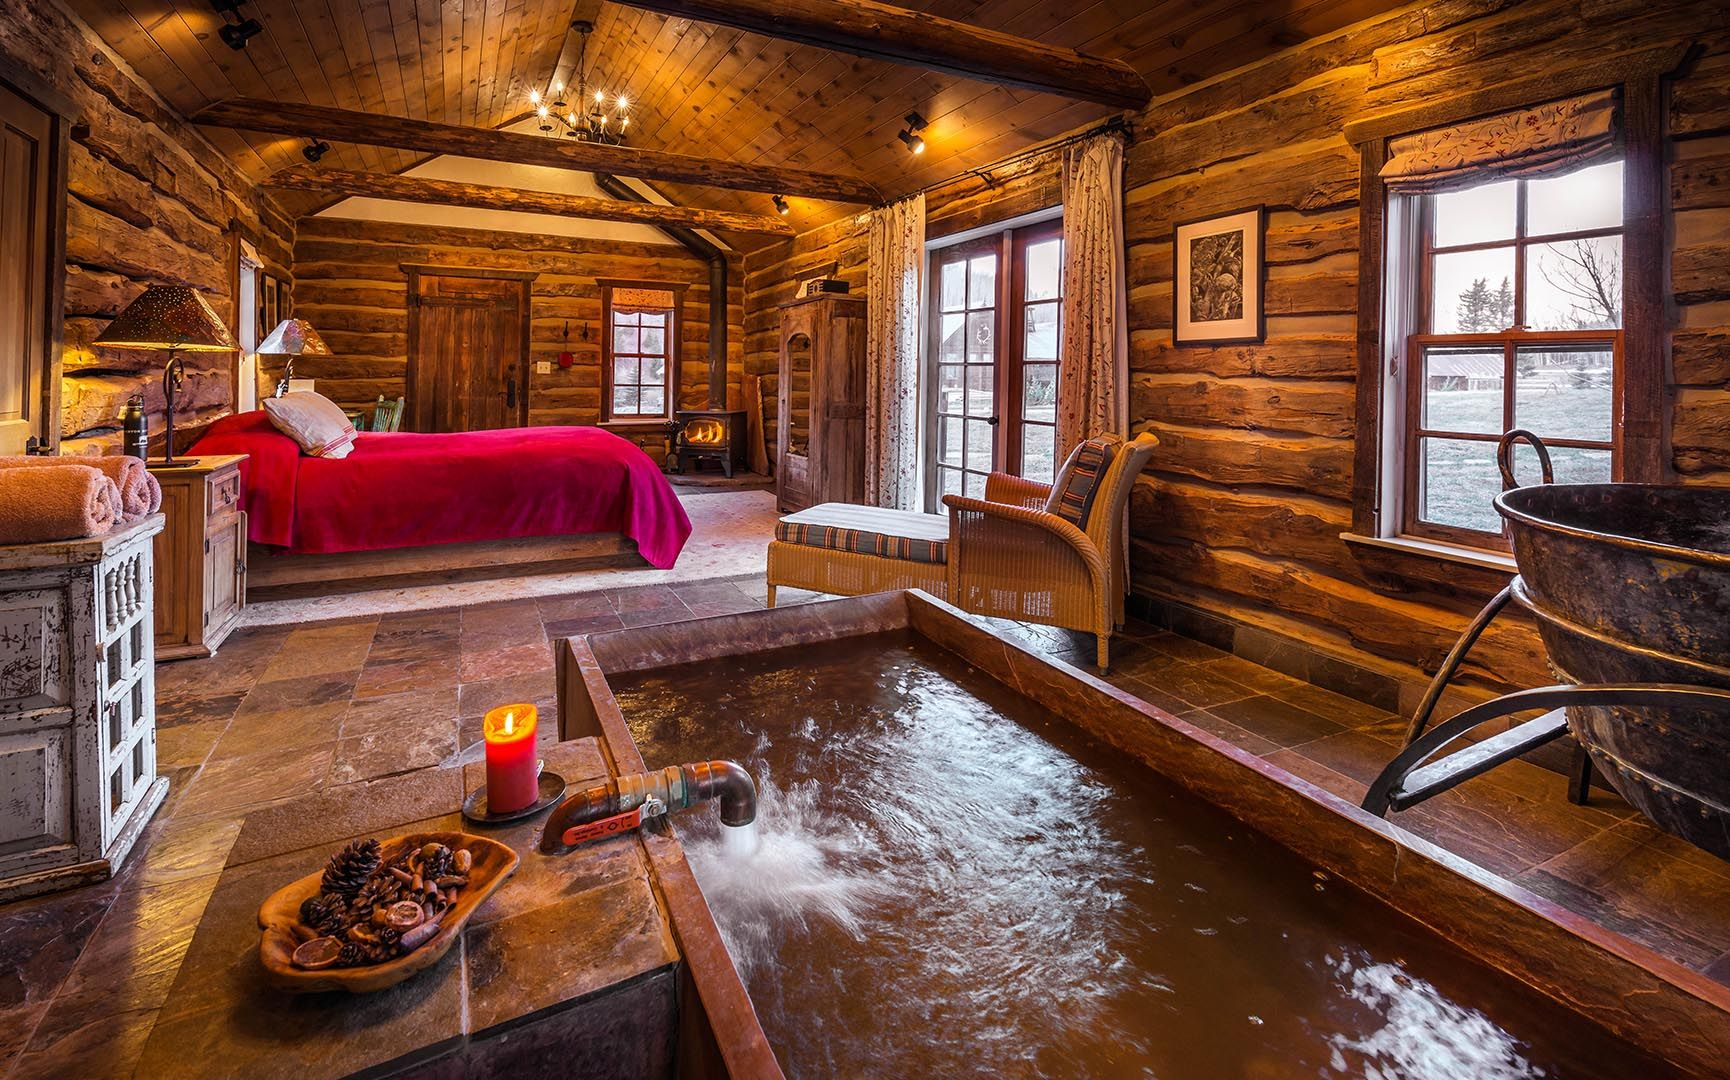 Dunton Hot Springs Resort Is A Luxurious Mountain Getaway That Provides Trails Skiing And Natural